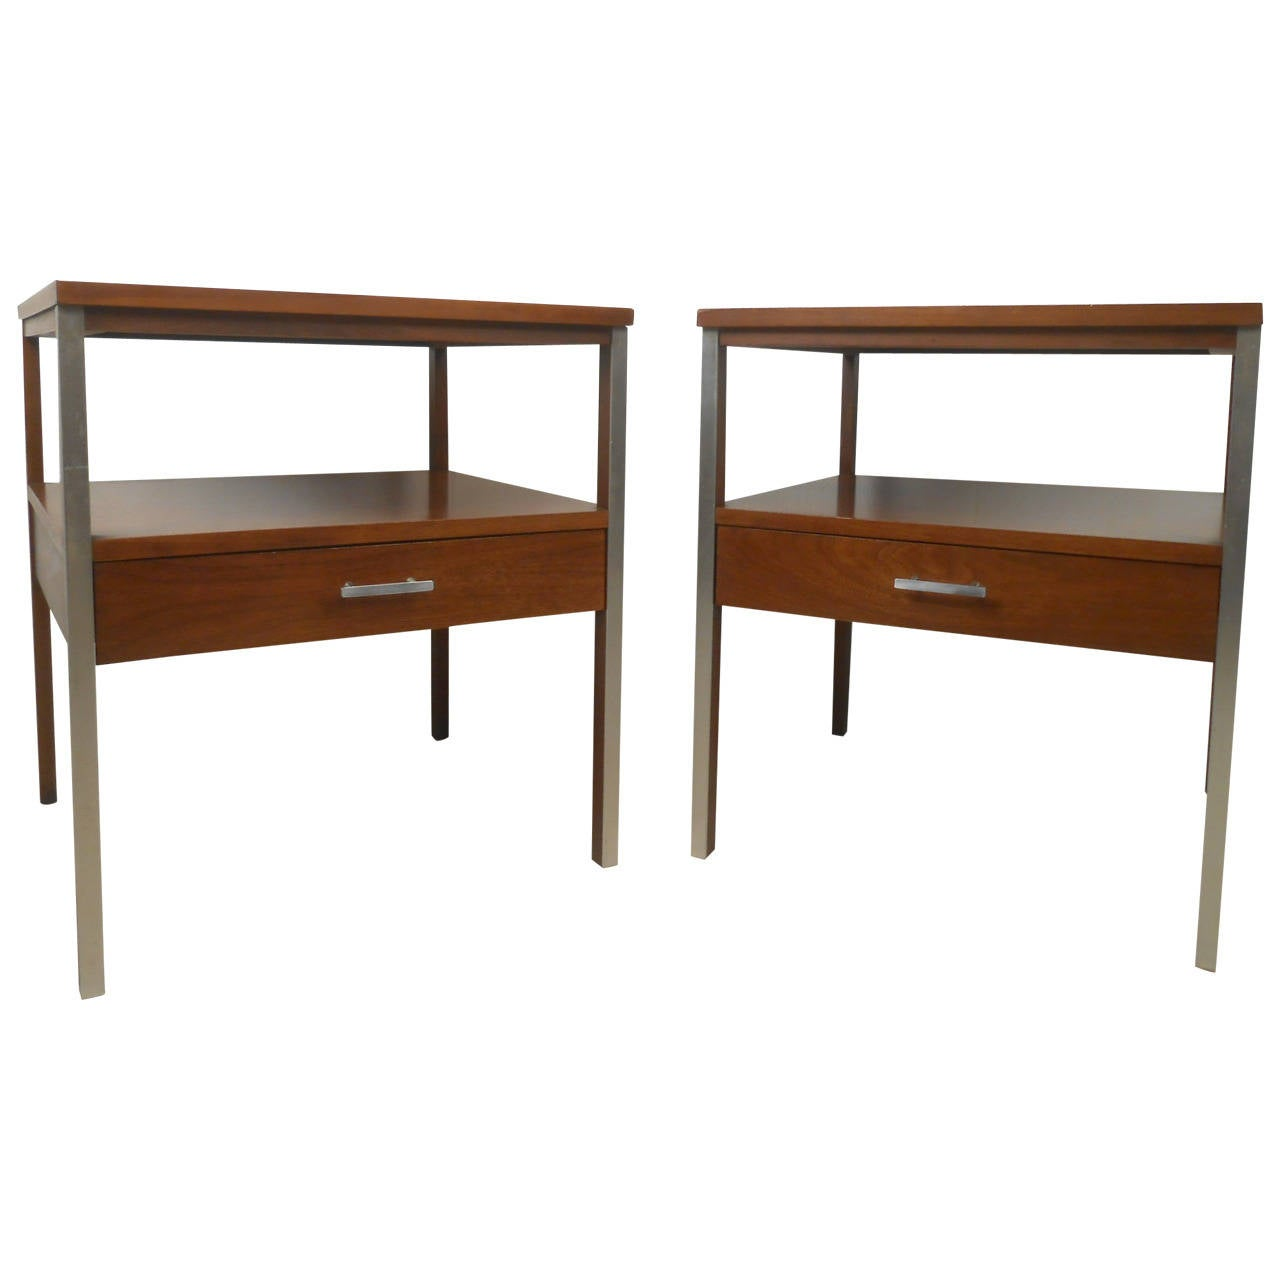 Paul mccobb mid century modern nightstands for sale at 1stdibs